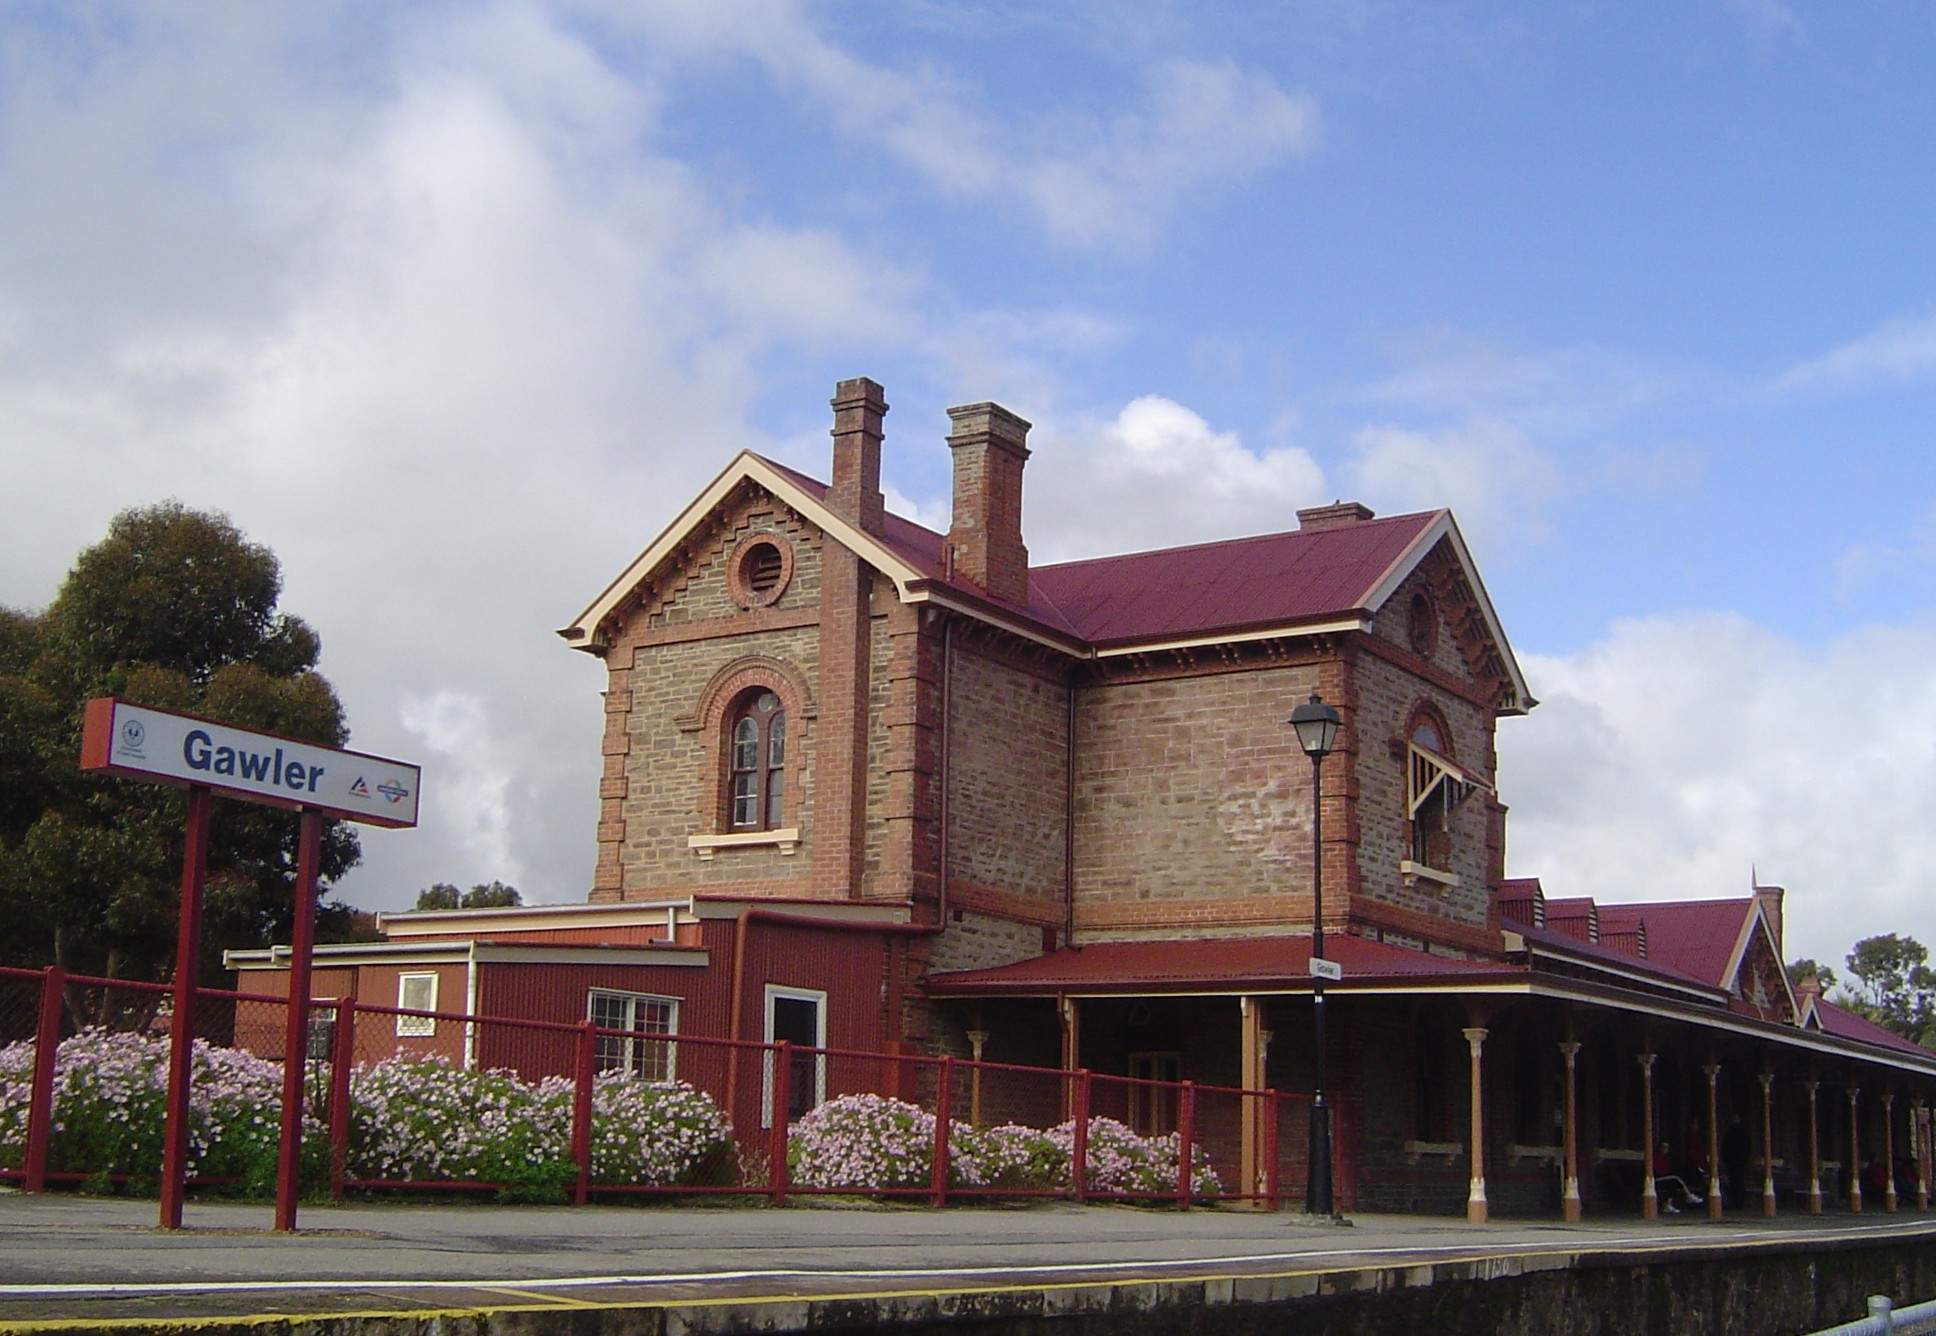 Gawler Australia  city photo : gawler railway station gawler south australia